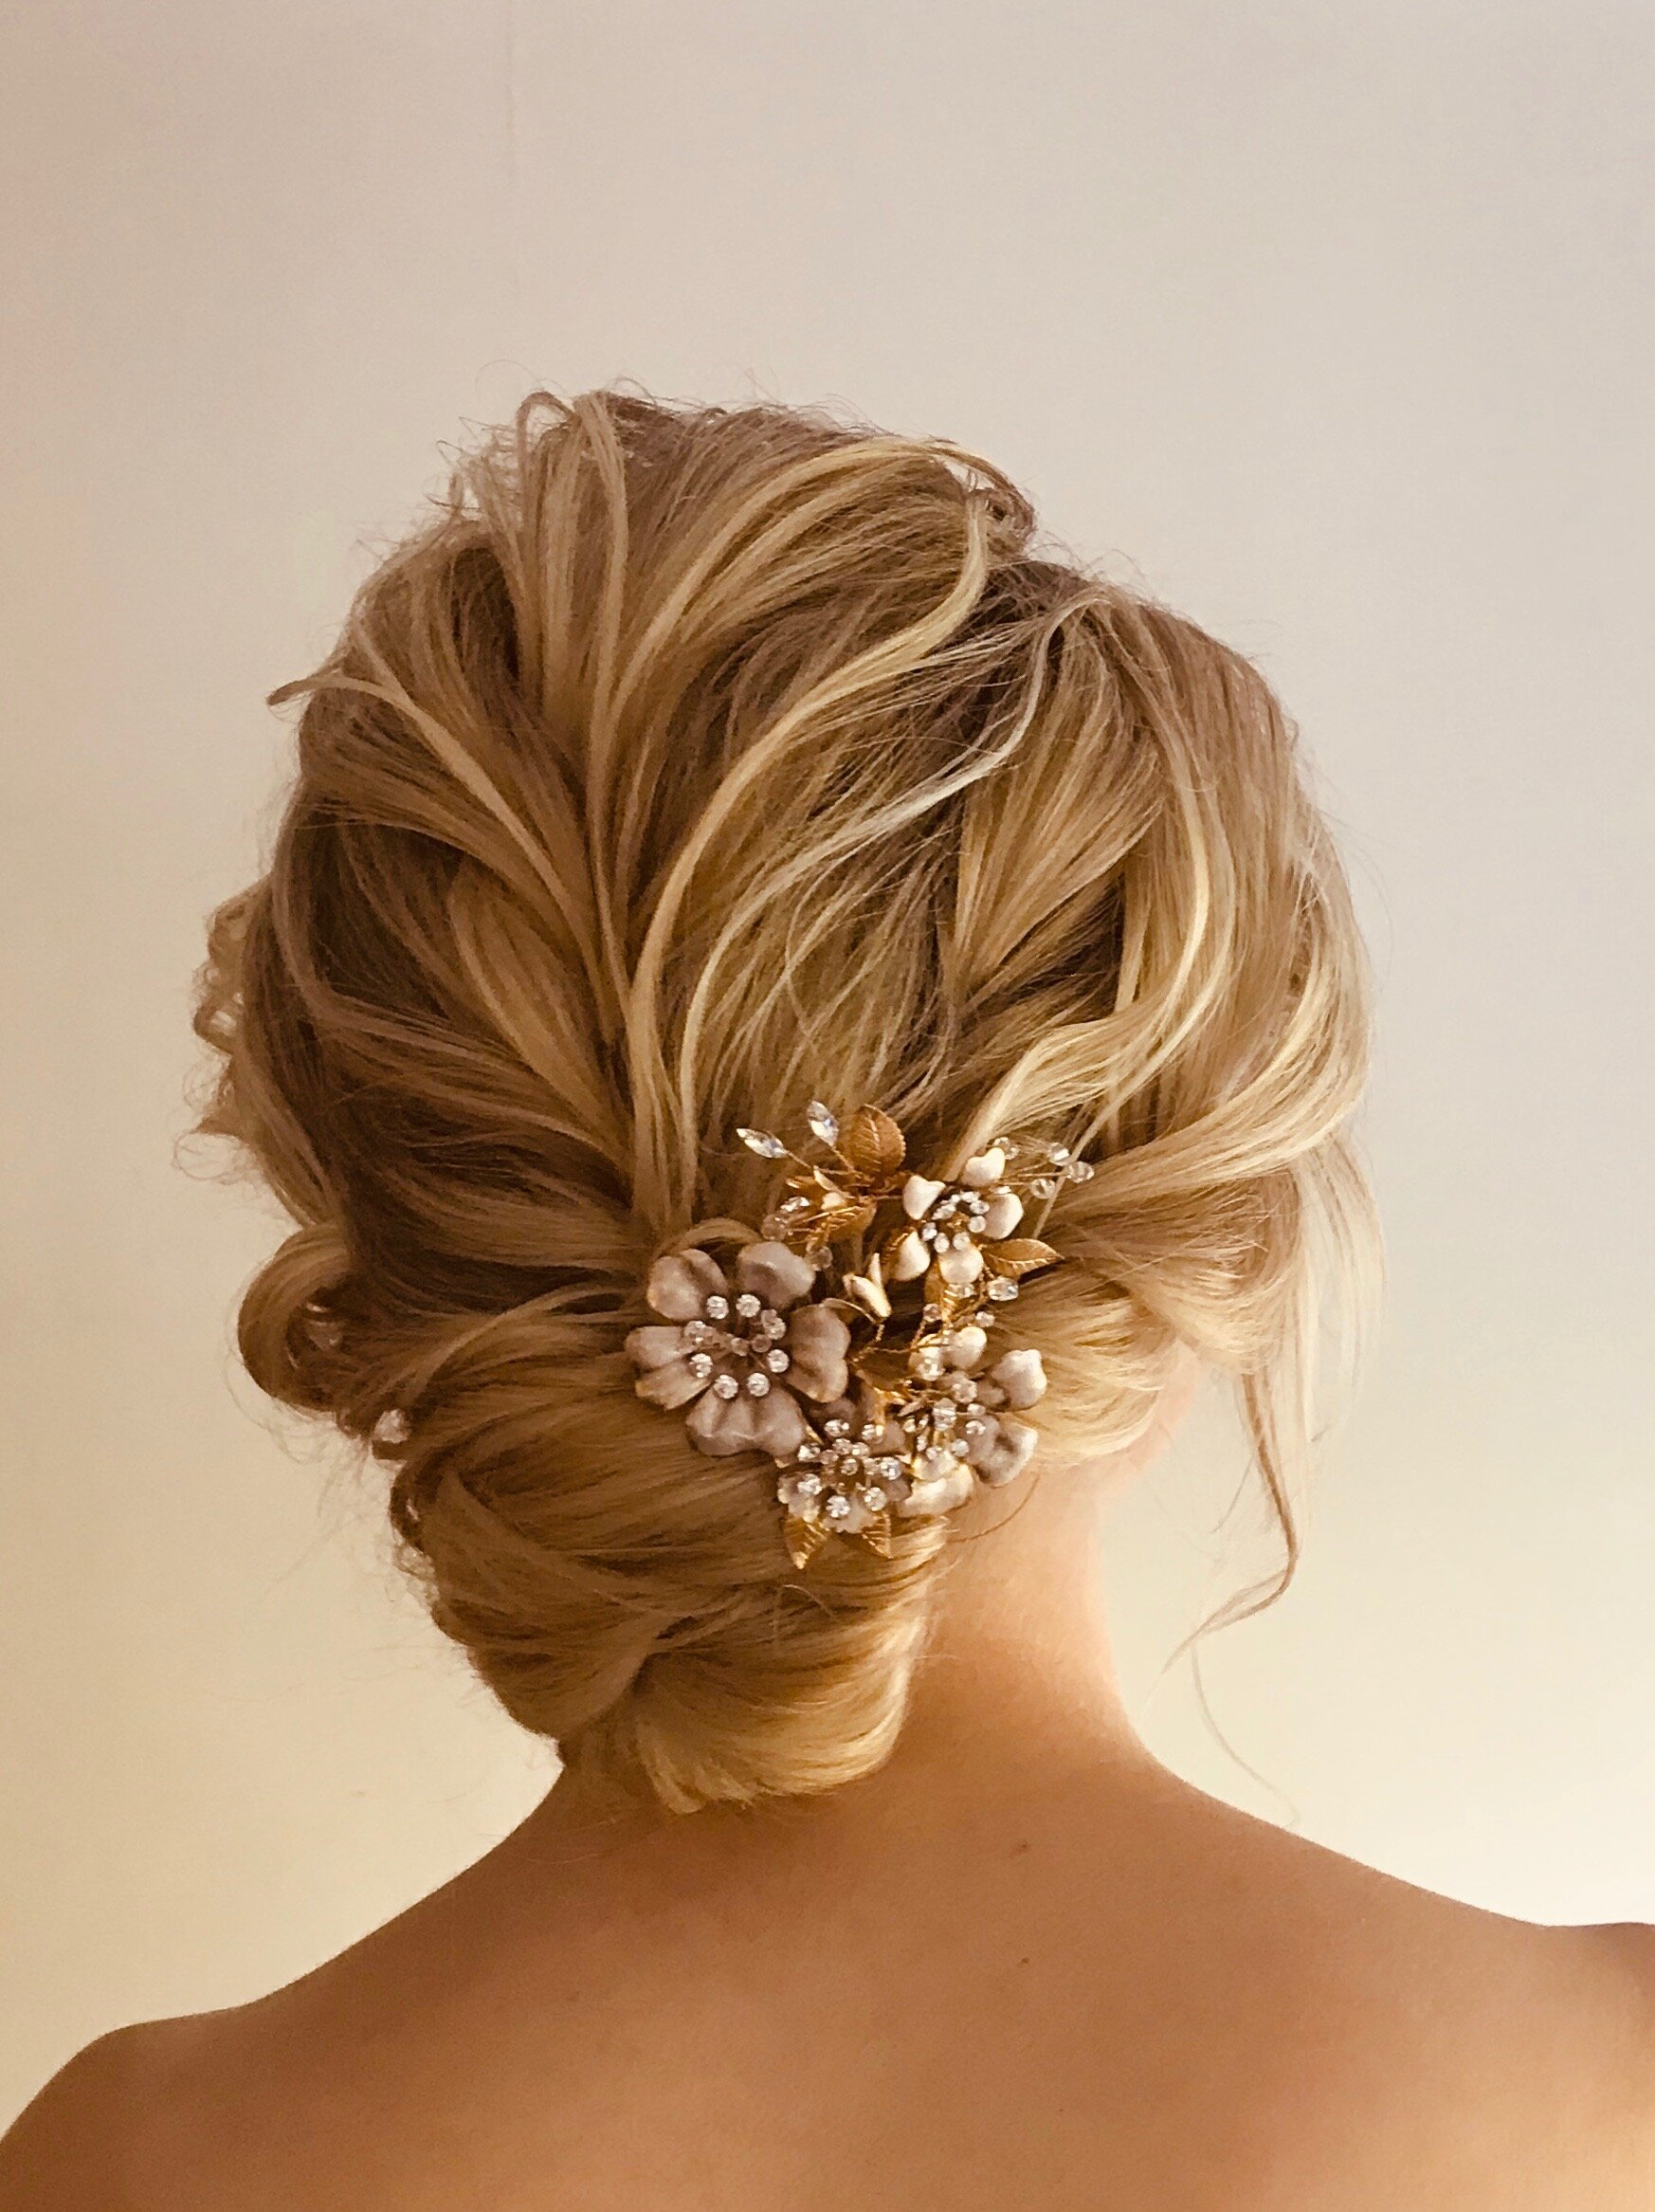 softhairstylesforweddingsessexsuffolk